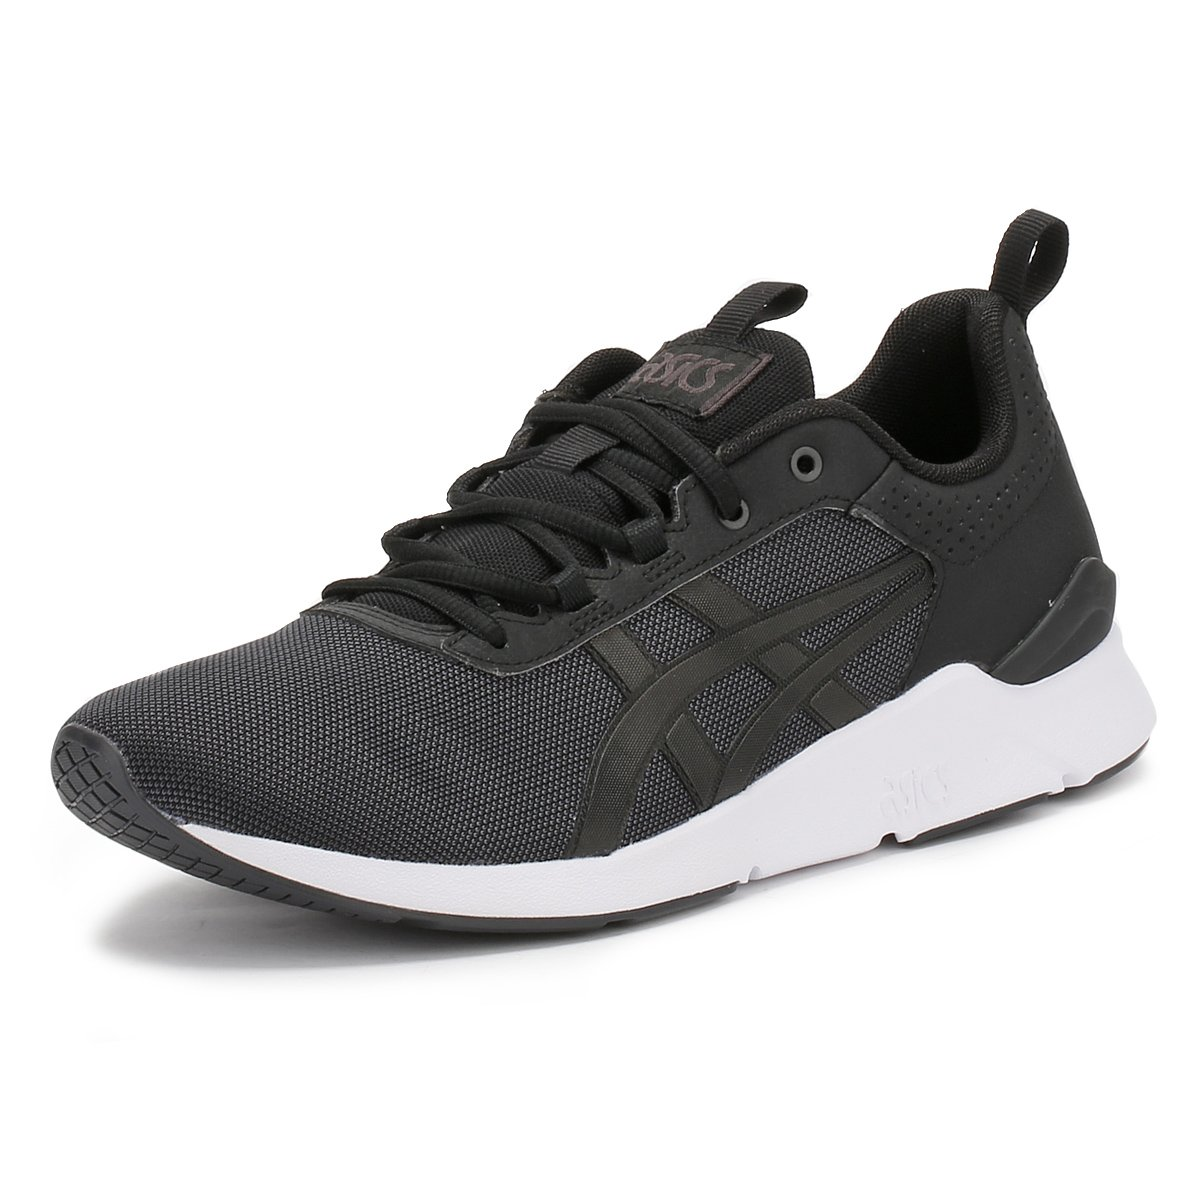 ASICS Mens Black Gel-Lyte Runner Trainers  Amazon.co.uk  Shoes   Bags 4f3a3ec20317c